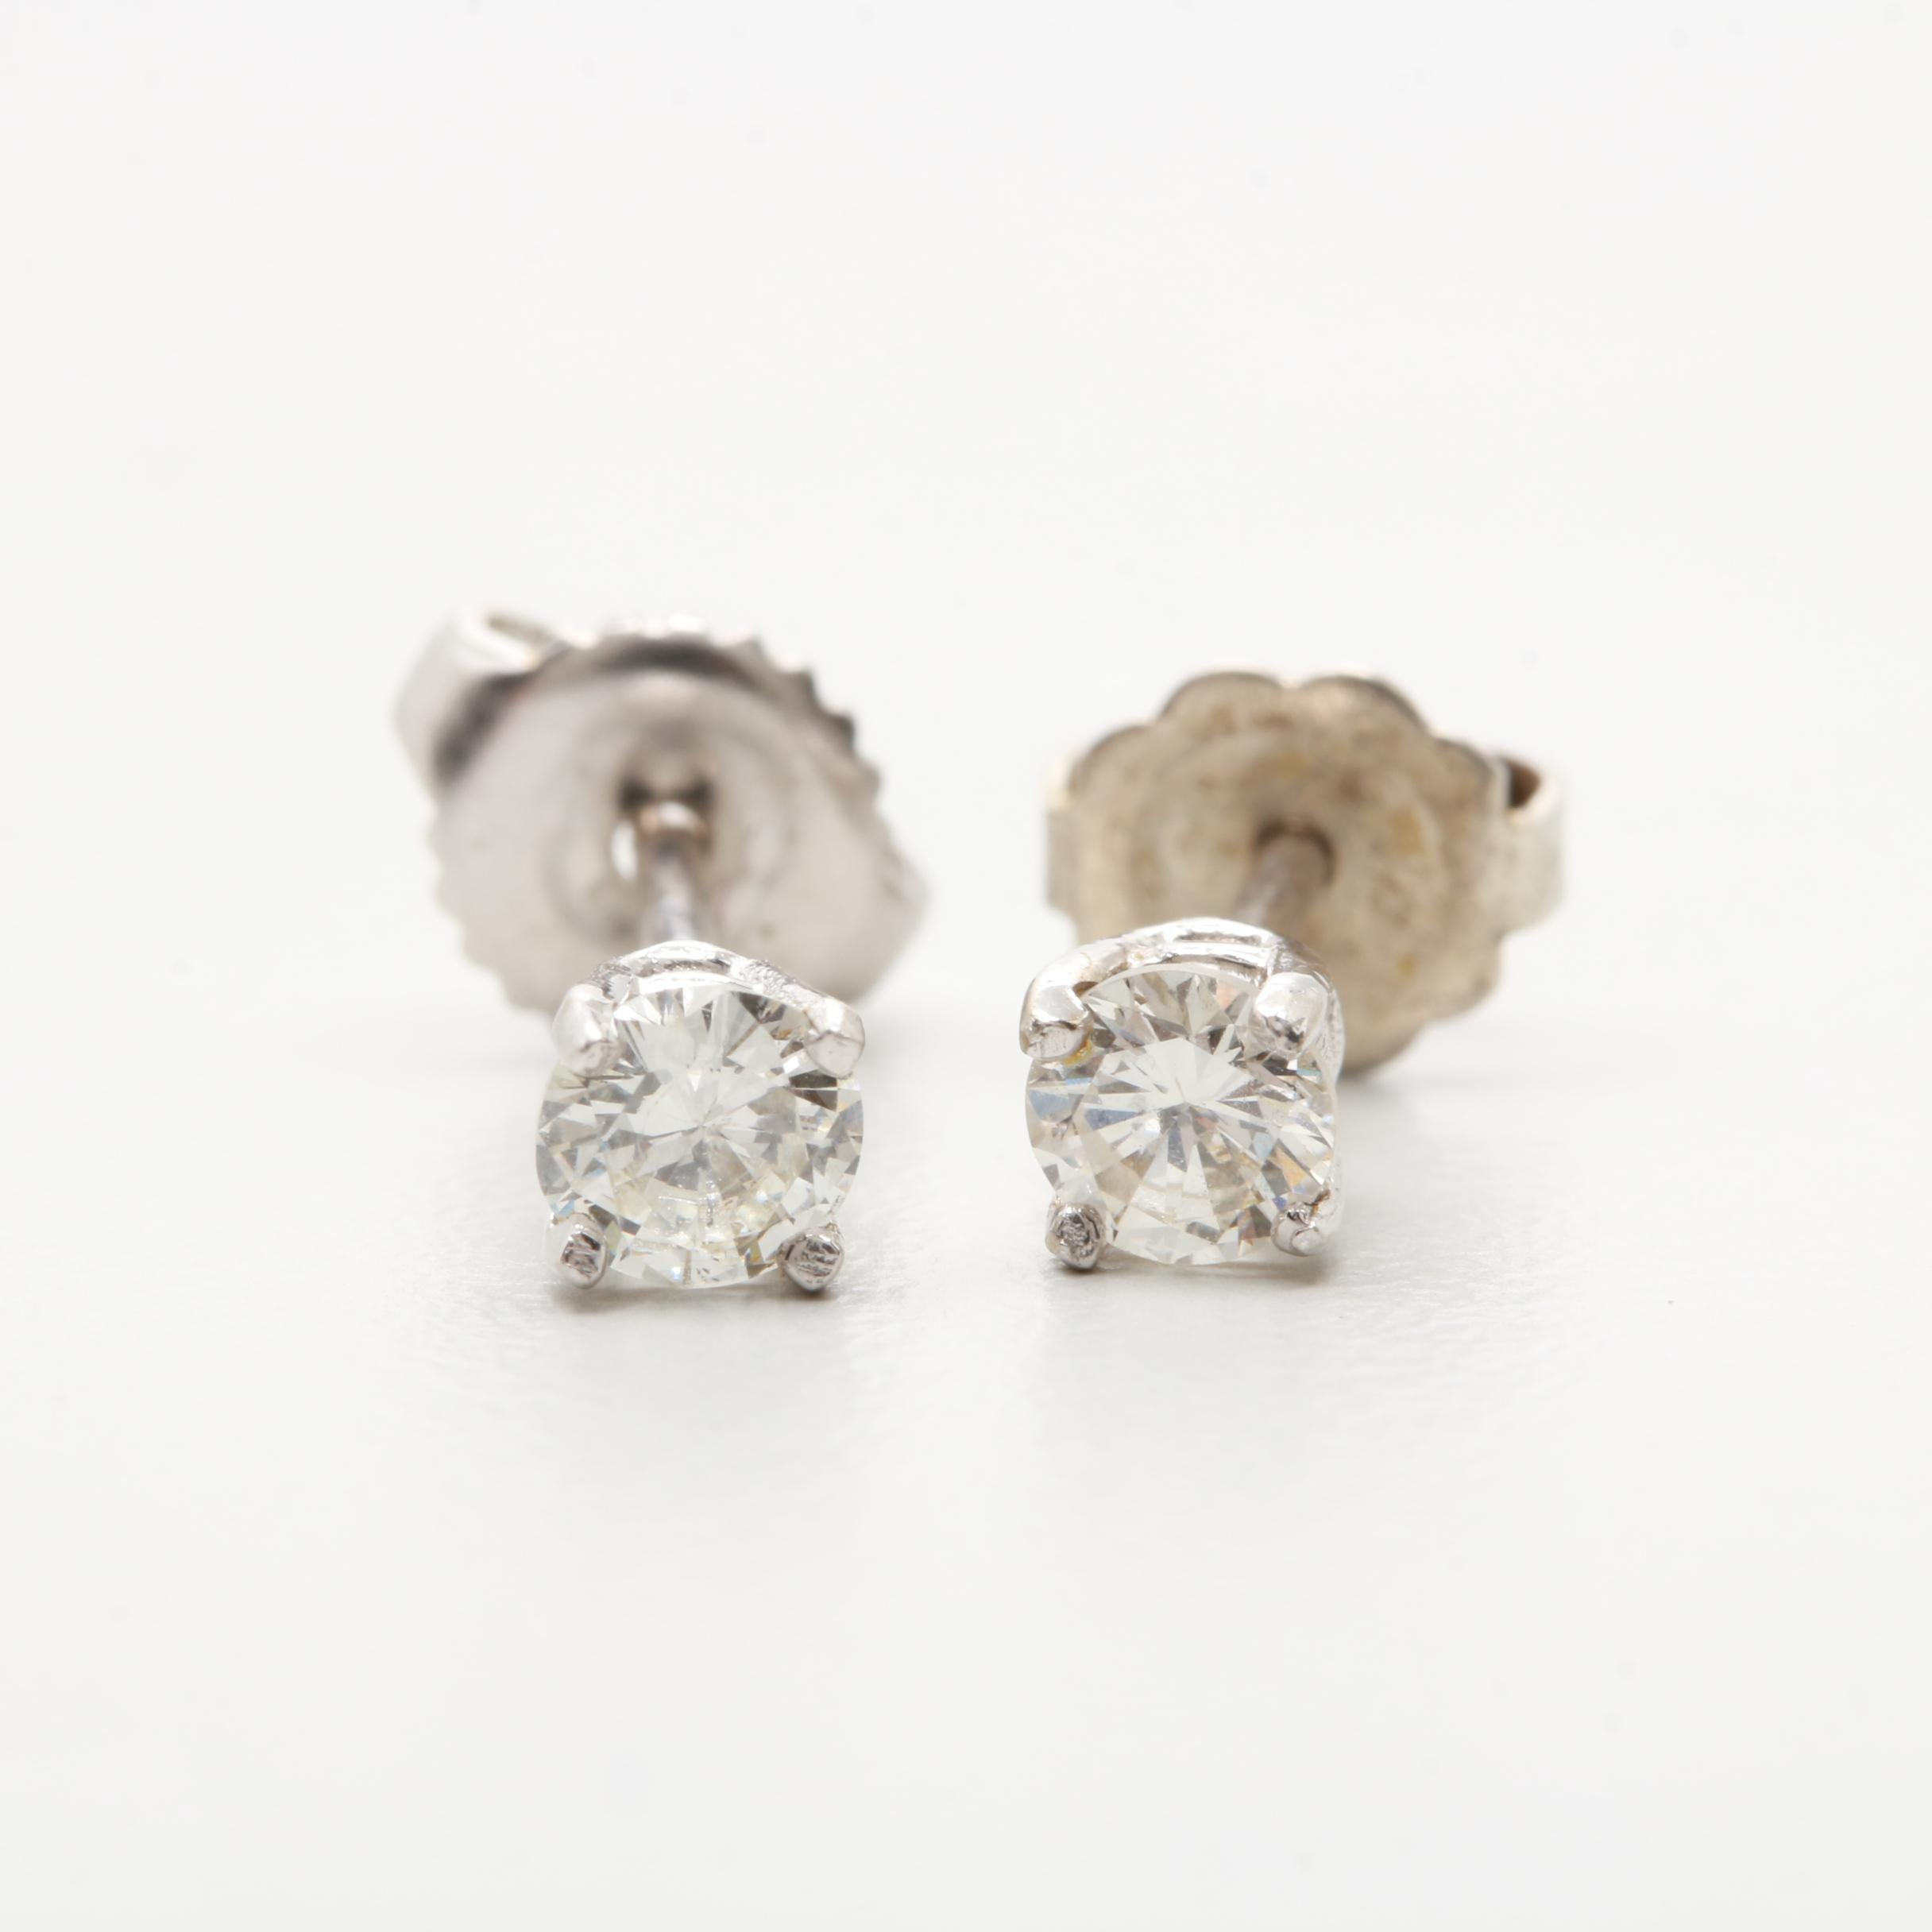 14K White Gold Diamond Studs Earrings